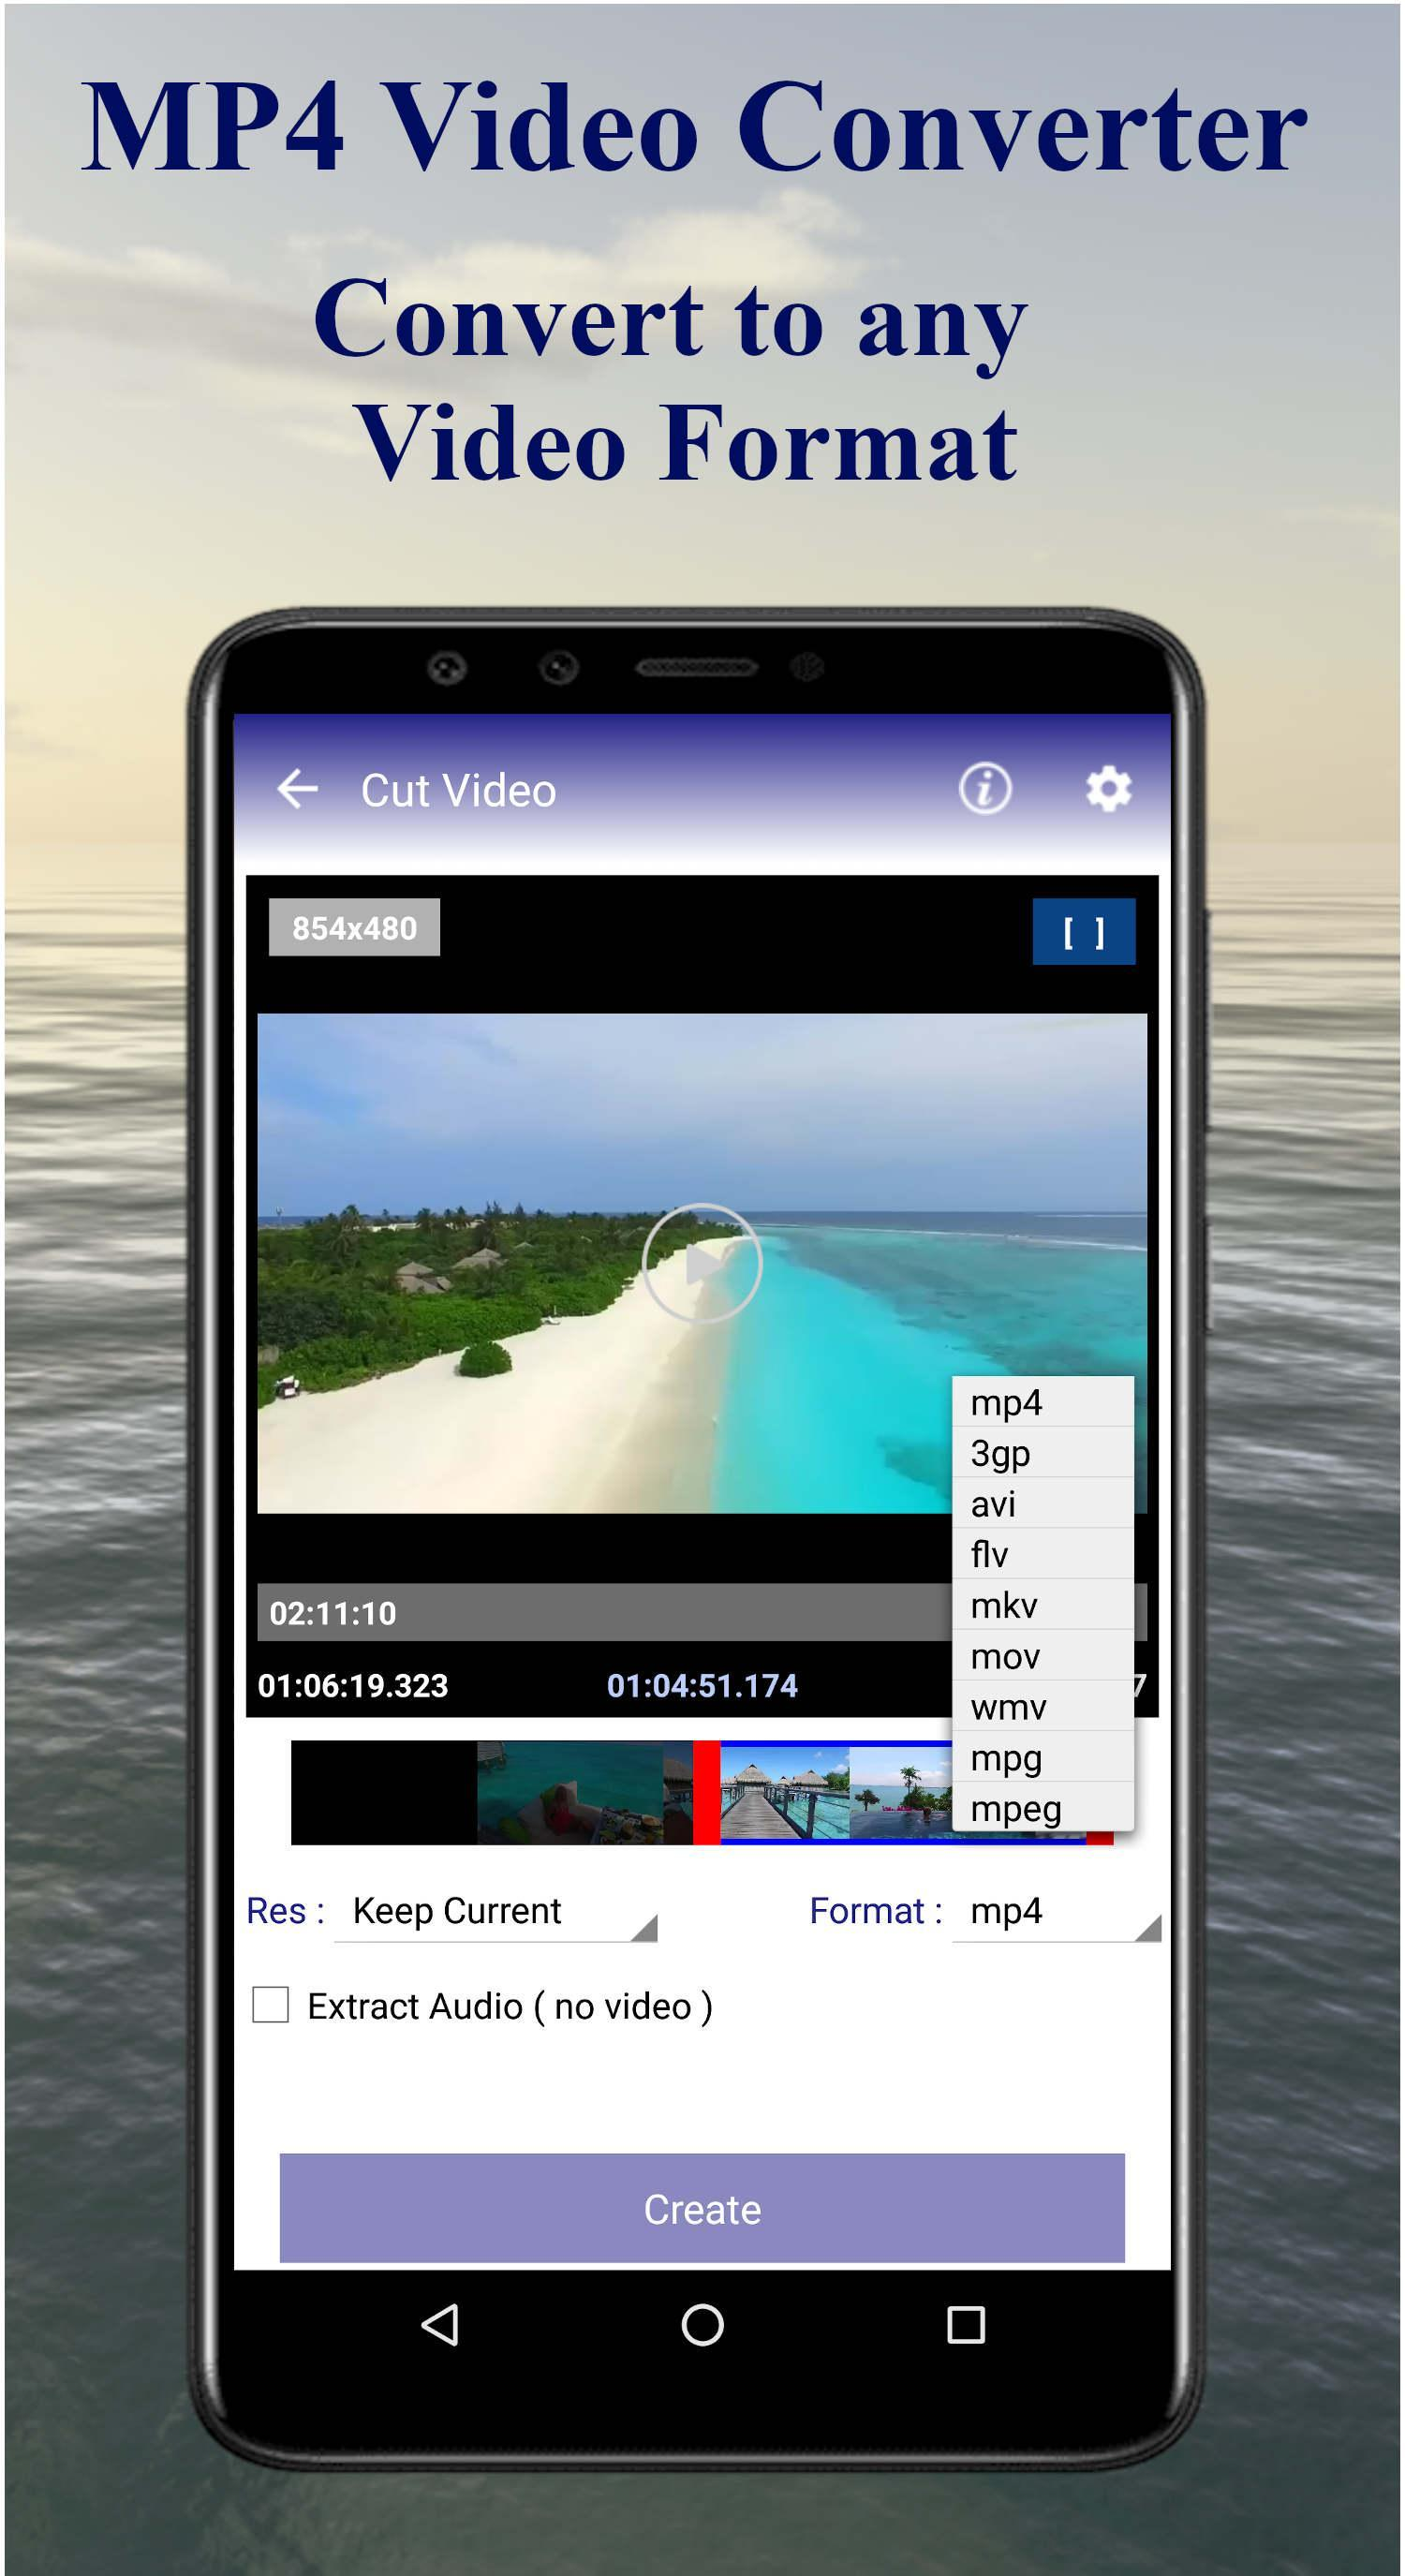 Mp4 Video Converter for Android - APK Download